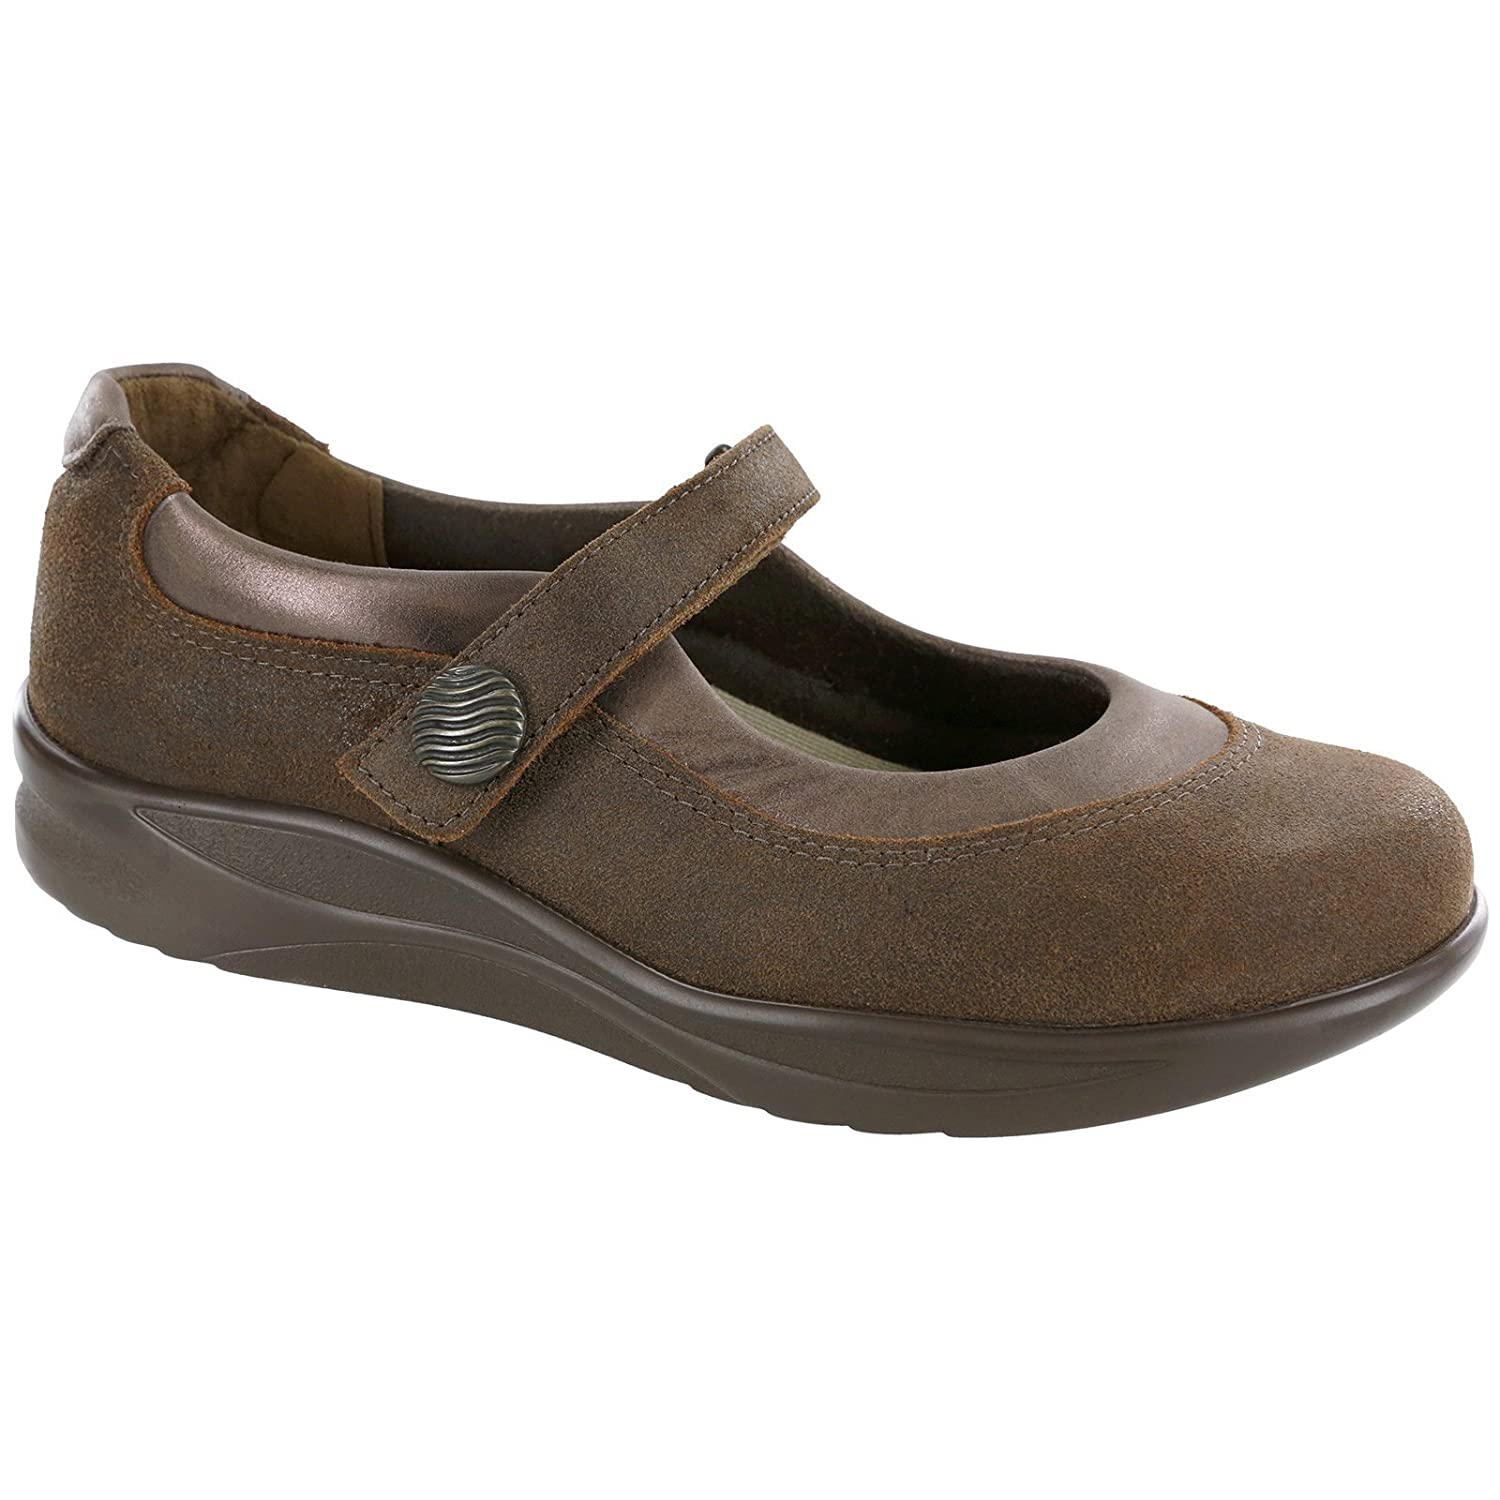 SAS Womens Step Out Leather Closed Toe Mary Jane Flats B01M7SUQOT 9.5 M (M) (B) US|Brown